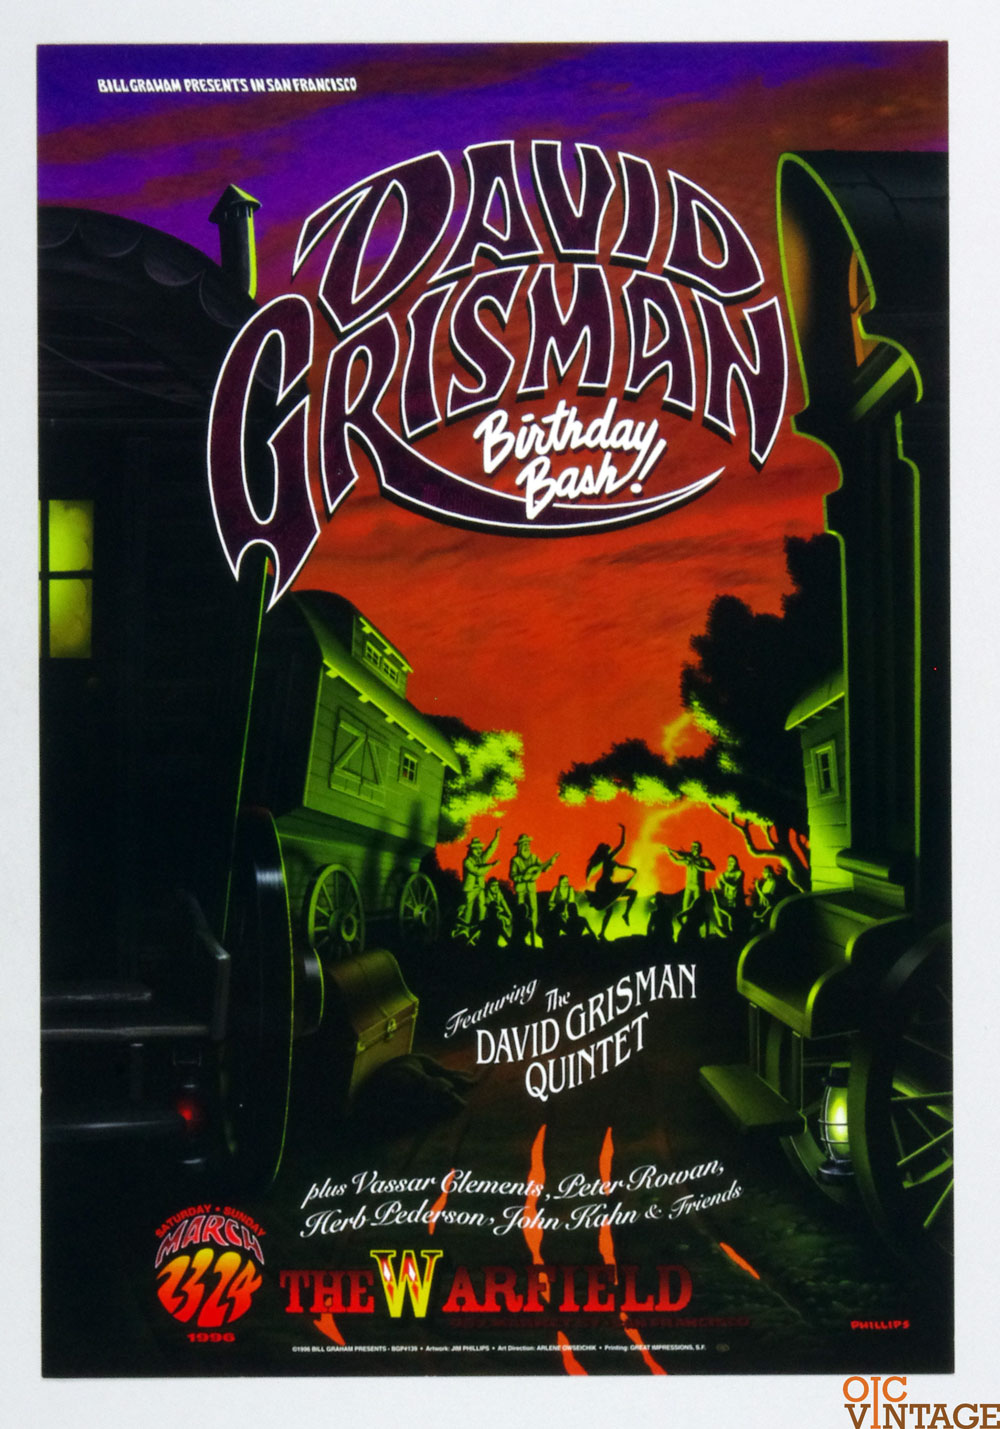 Bill Graham Presents Poster 1996 Mar 23 David Grisman Quintet Birthday Bash #139 Jim Phillips